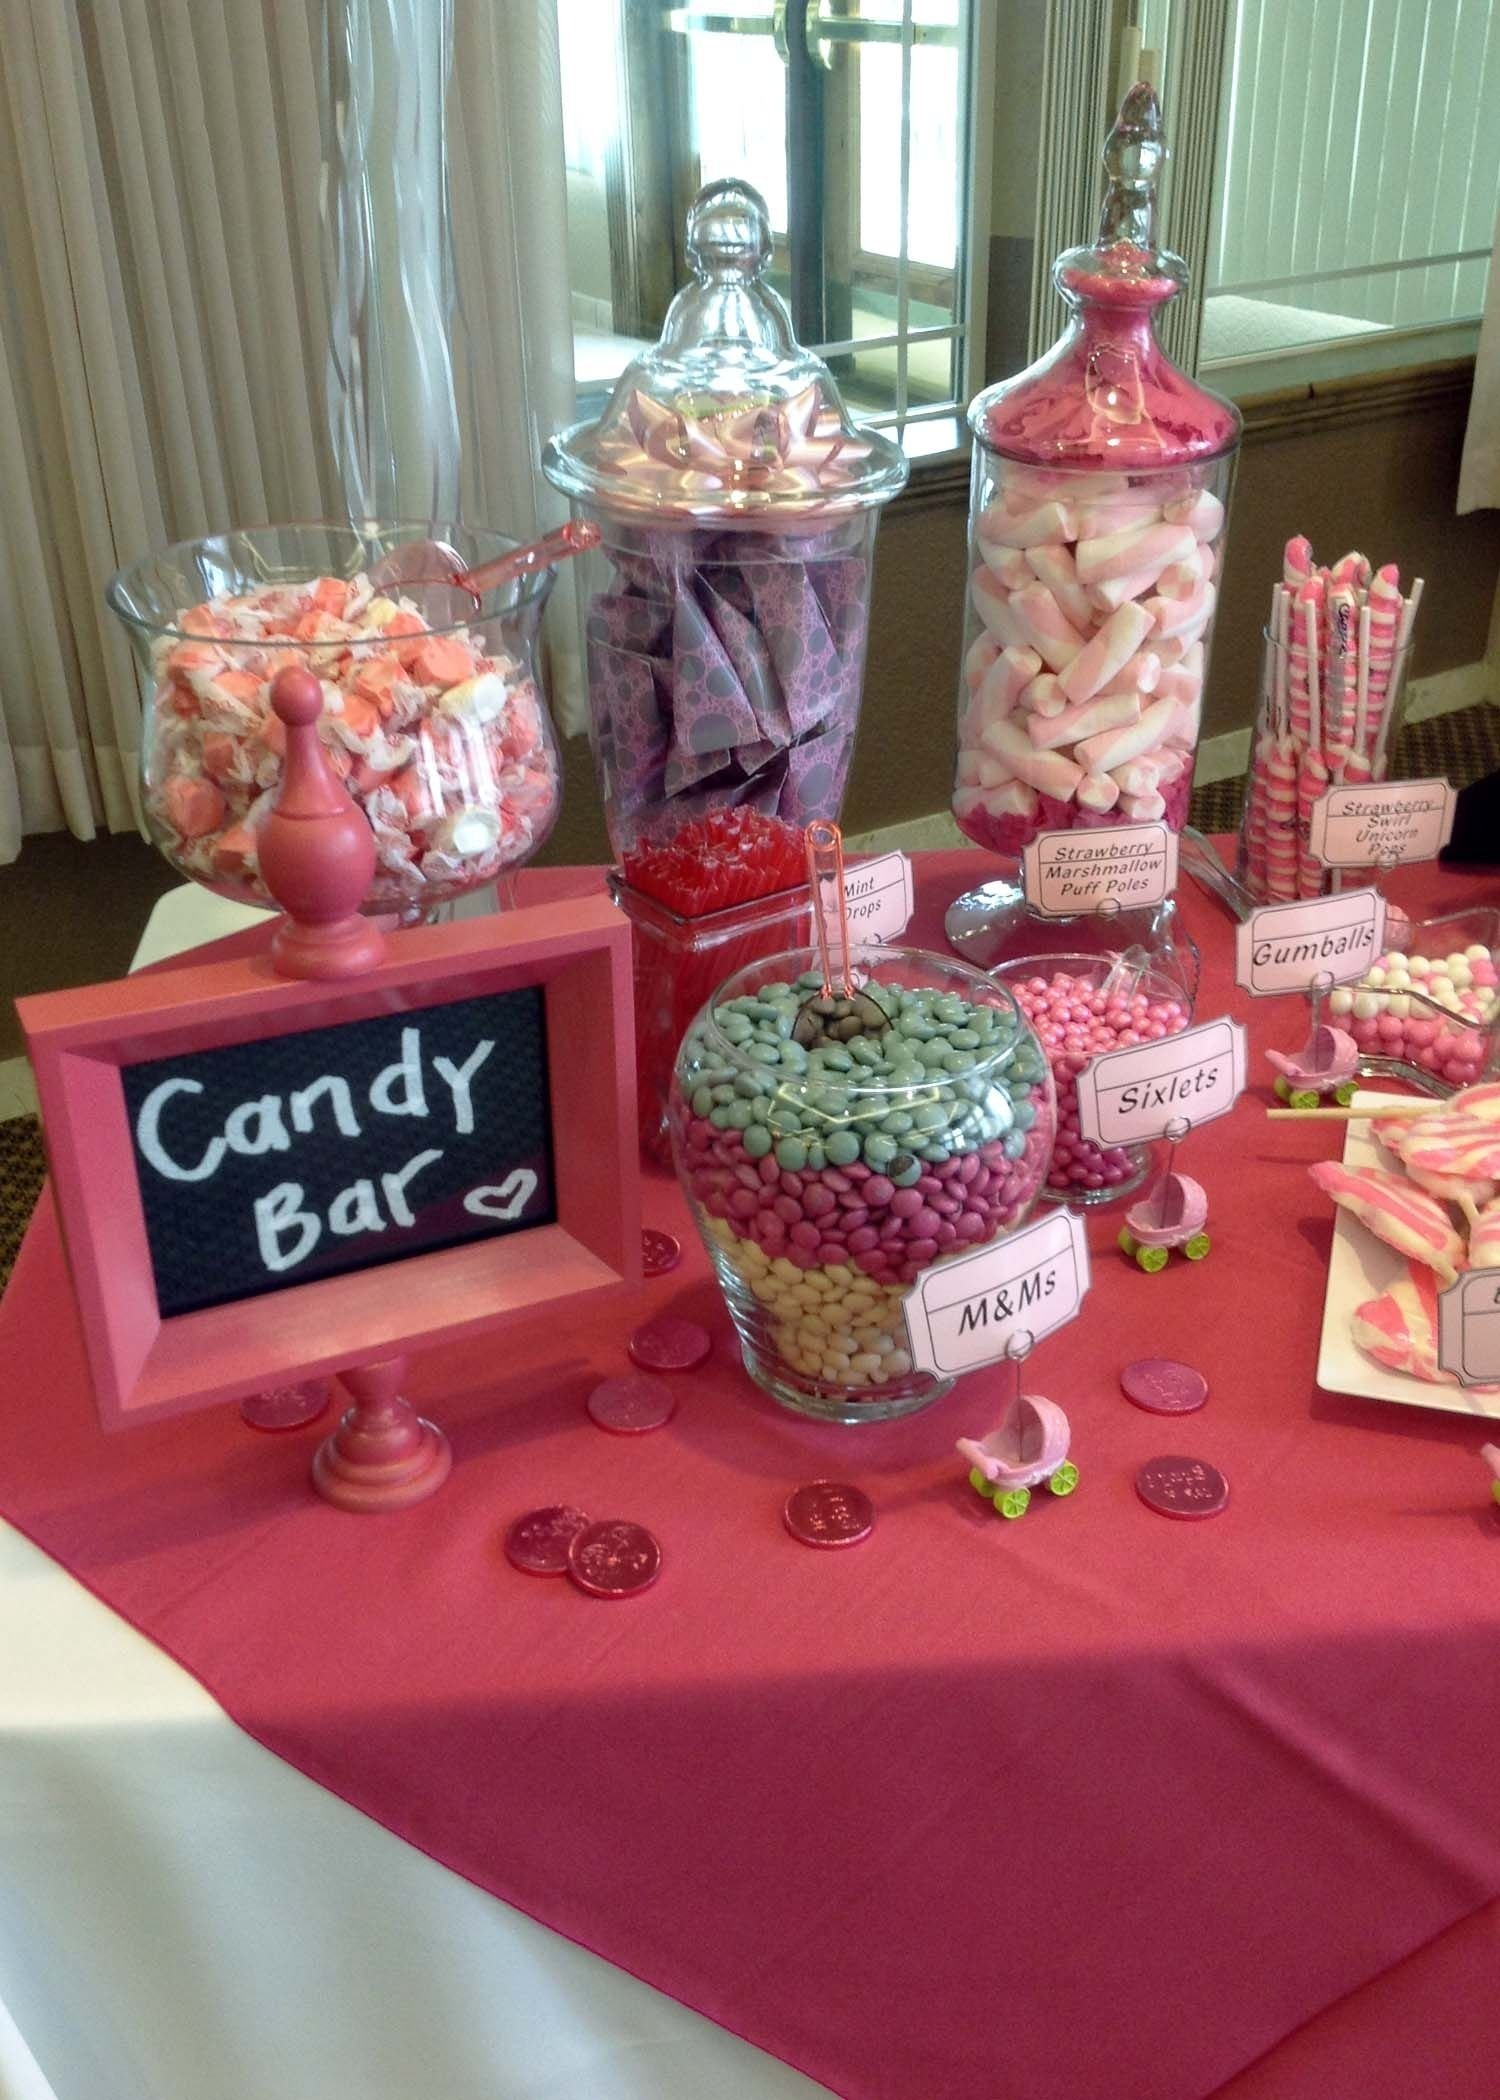 10 Attractive Candy Bar Ideas For Baby Shower baby shower candy bar could find baby themed items and make up baby 1 2020